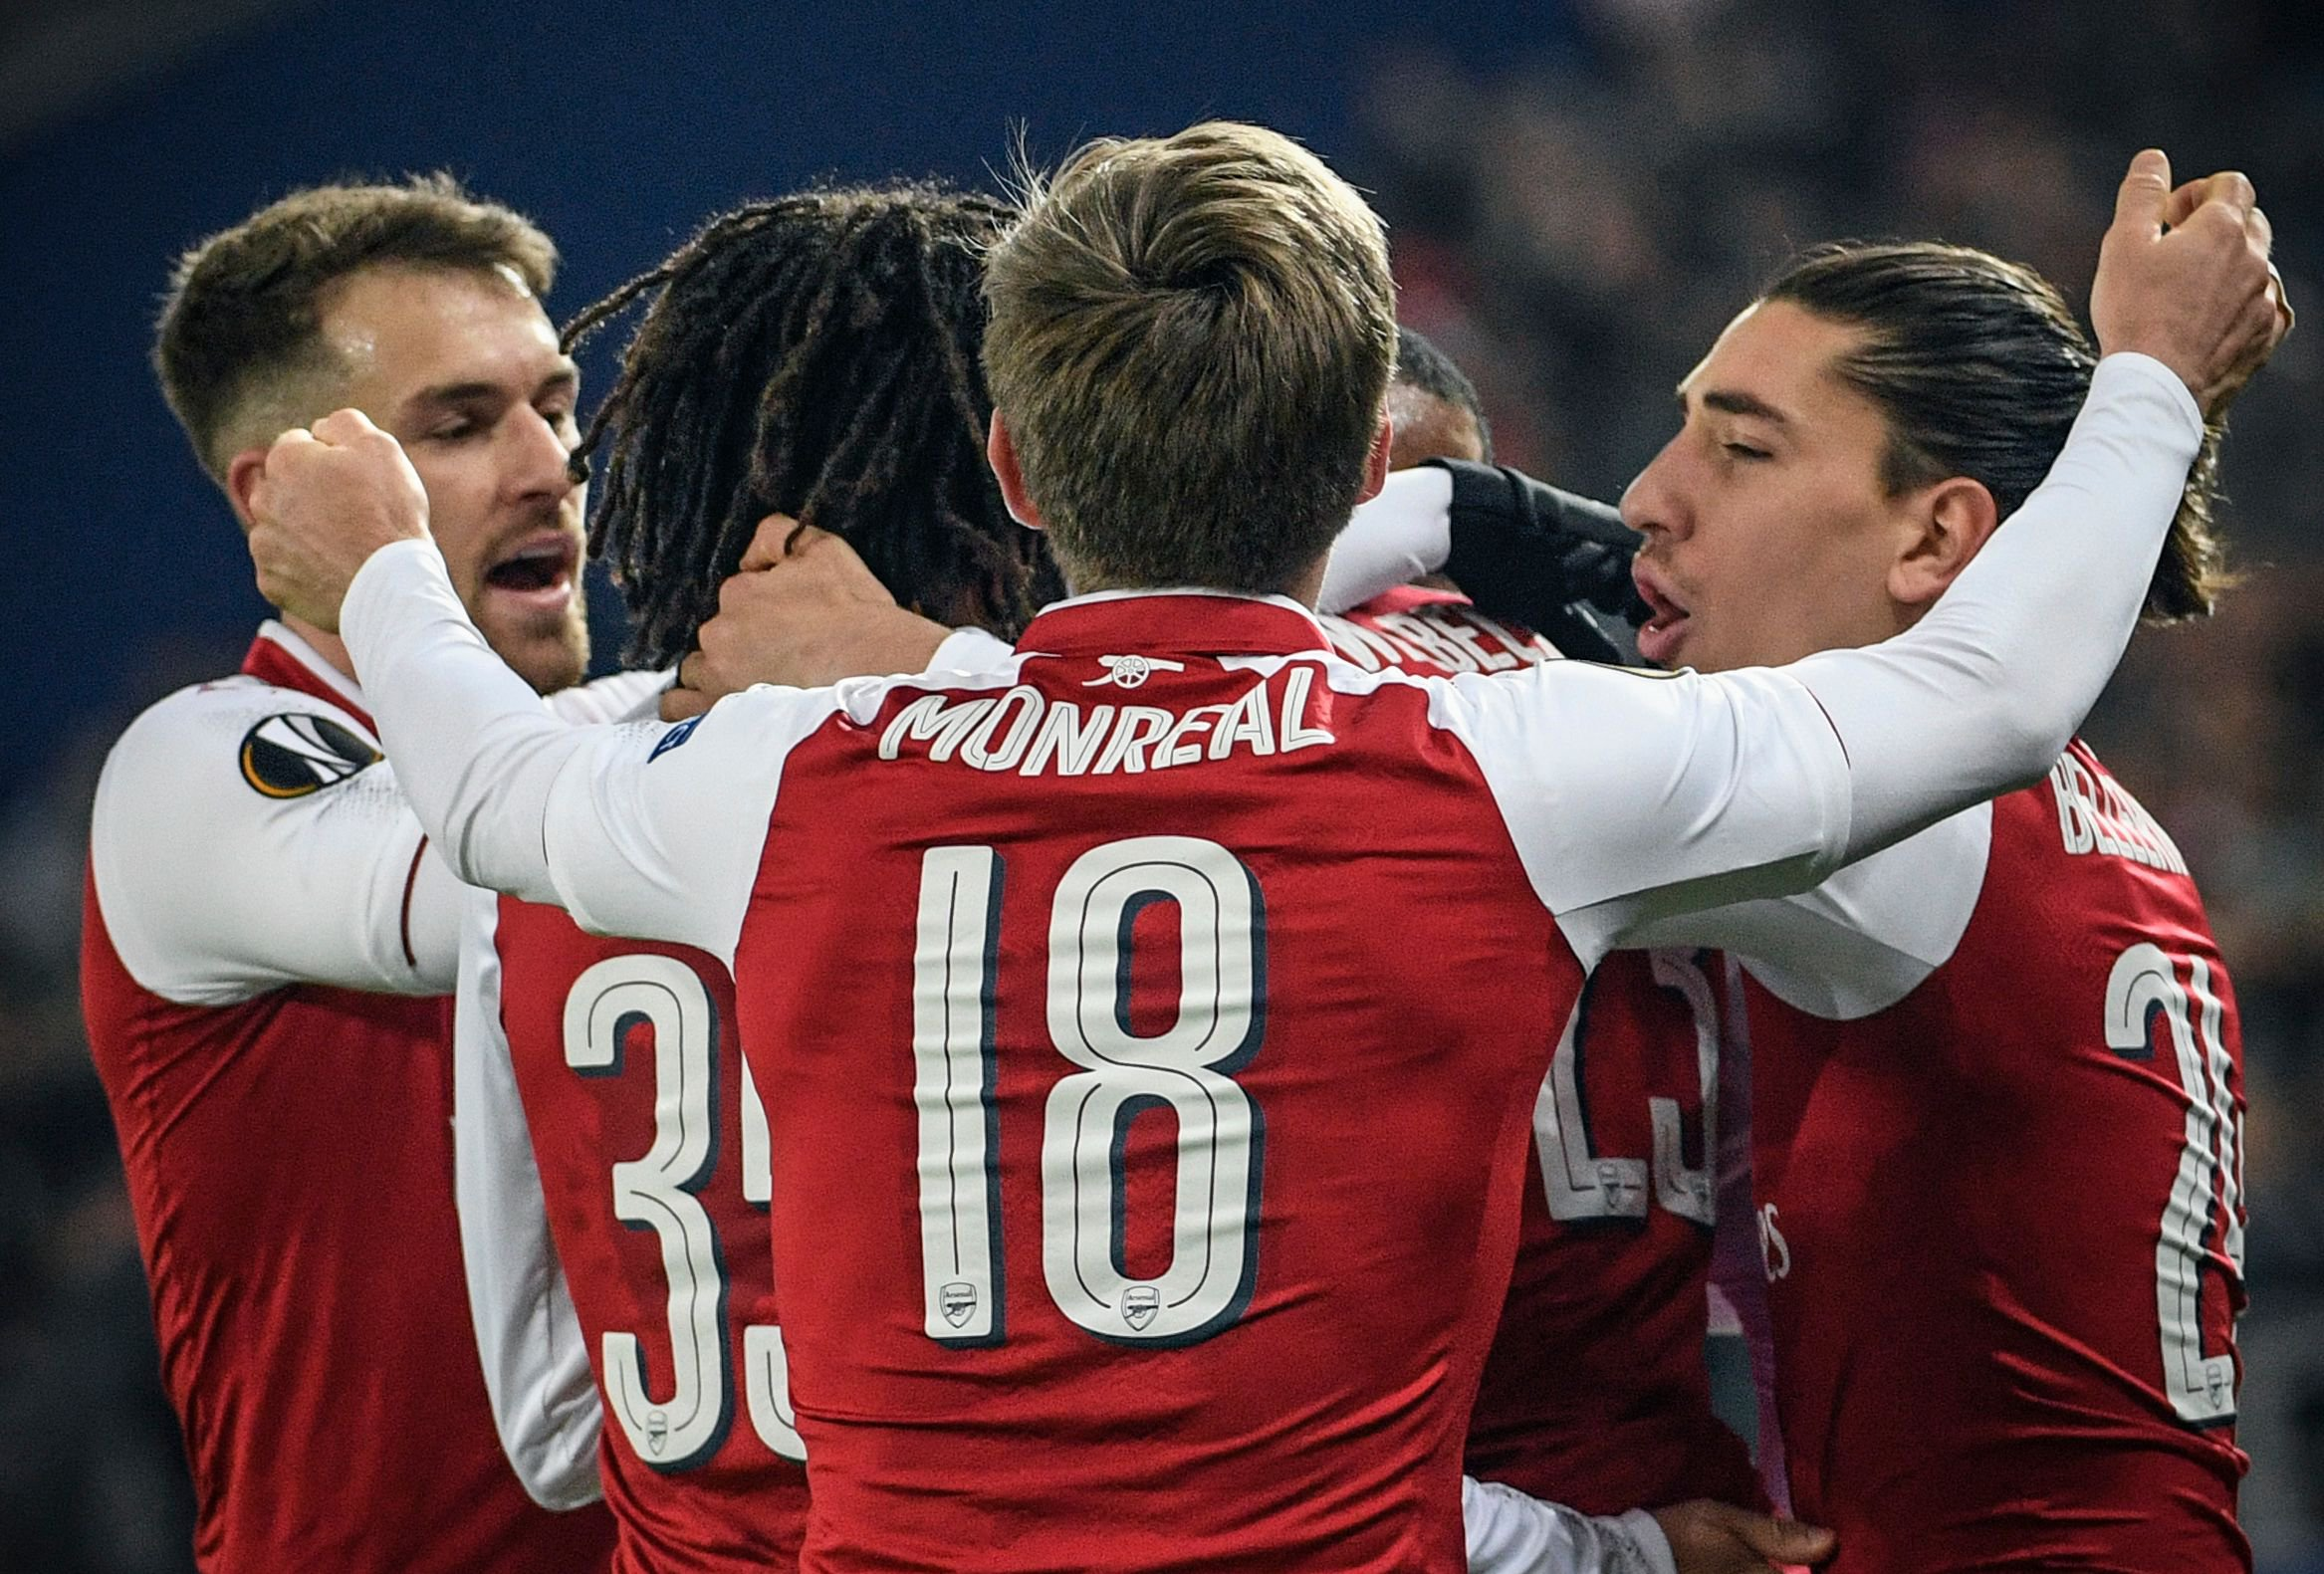 Arsenal's players celebrate a goal during the UEFA Europa League second leg quarter-final football match between CSKA Moscow and Arsenal at VEB Arena stadium in Moscow on April 12, 2018. / AFP PHOTO / Alexander NEMENOVALEXANDER NEMENOV/AFP/Getty Images